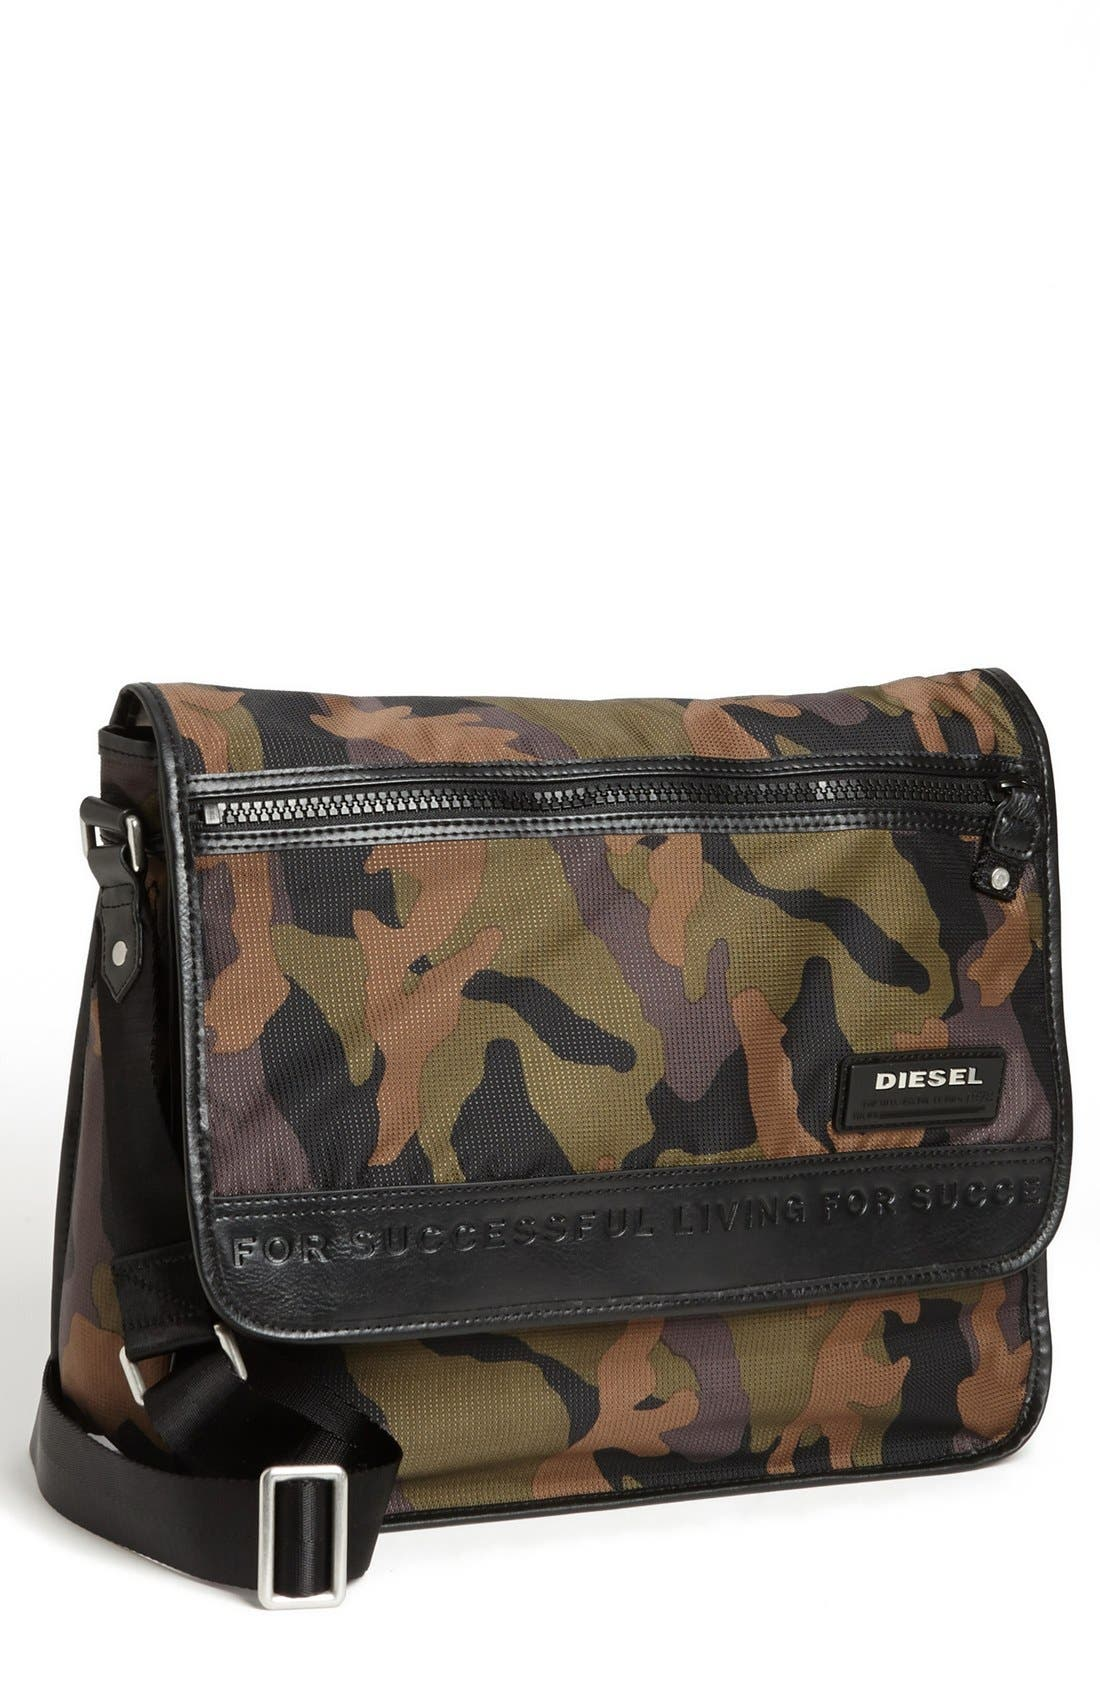 Alternate Image 1 Selected - DIESEL® 'On The Road Twice' Messenger Bag